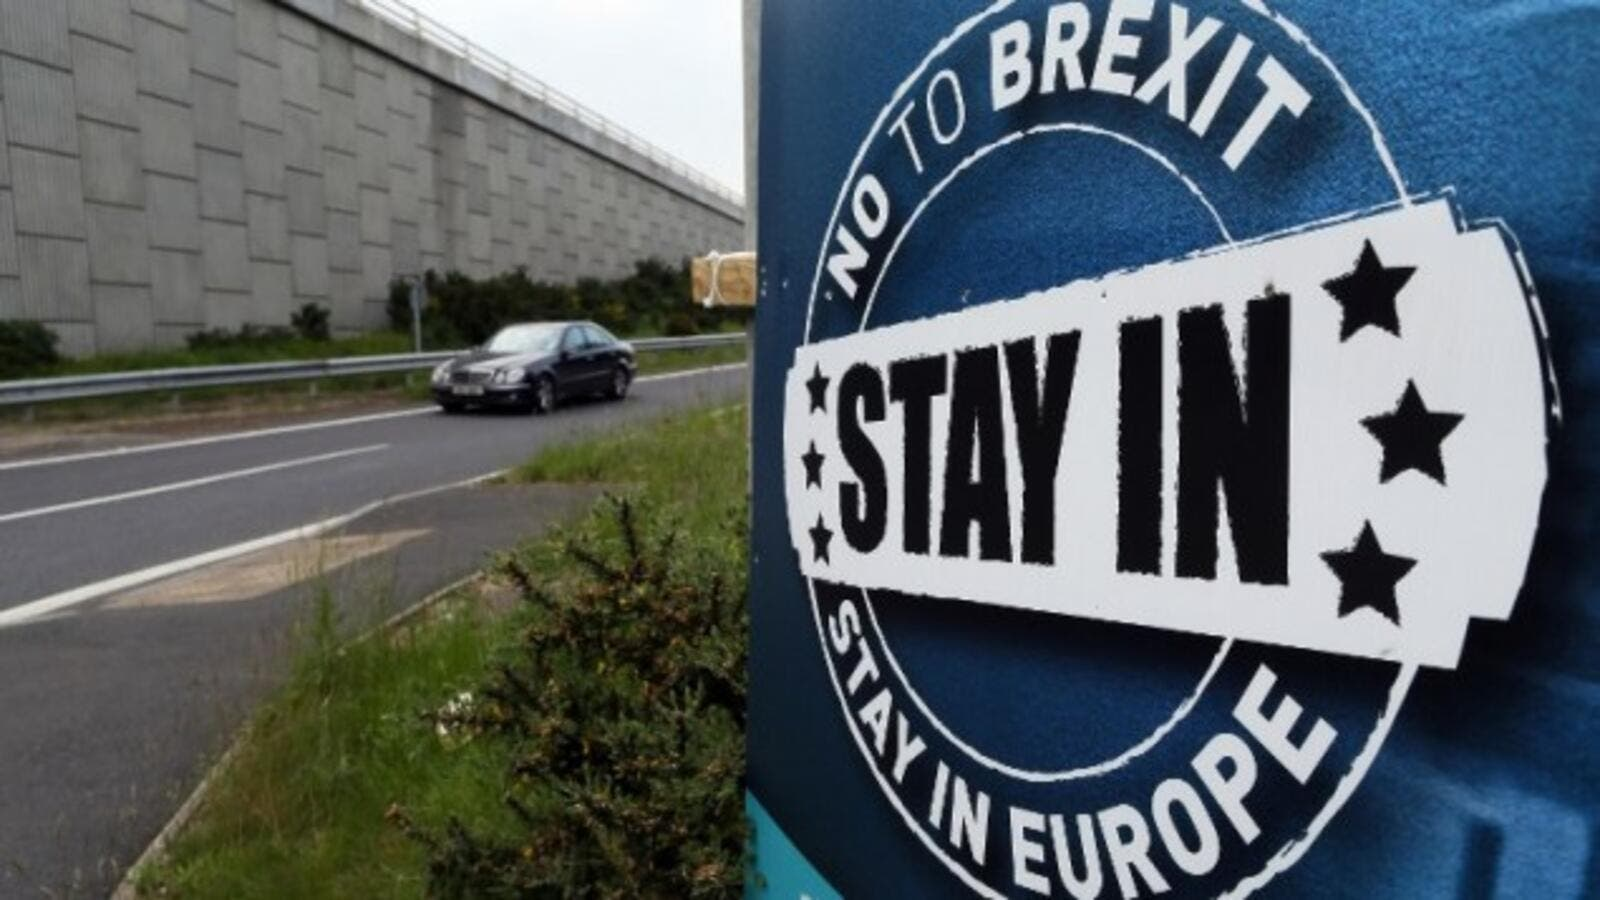 A 'No To Brexit' sign is pictured on the outskirts of Newry in Northern Ireland on June 7, 2016. (AFP/Paul Faith)